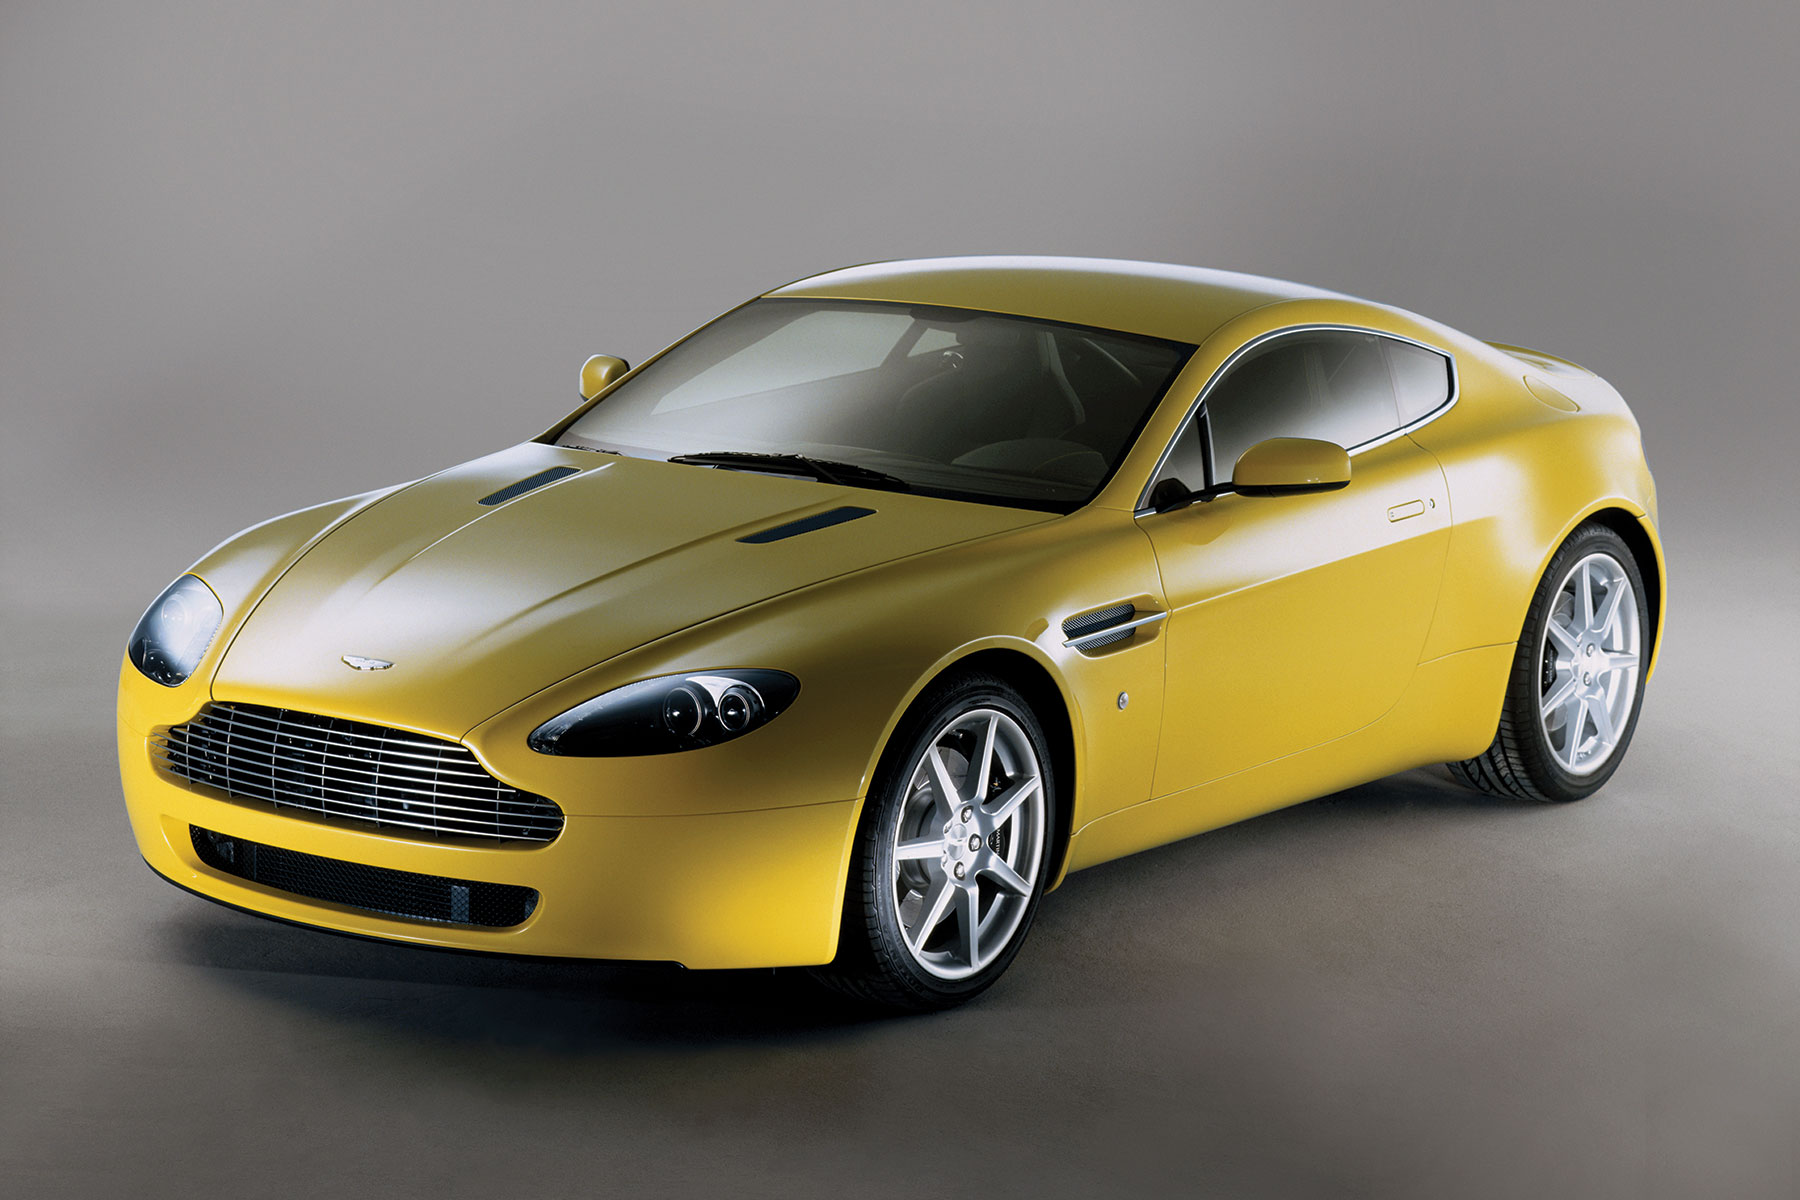 MR archive: Aston Martin V8 Vantage review